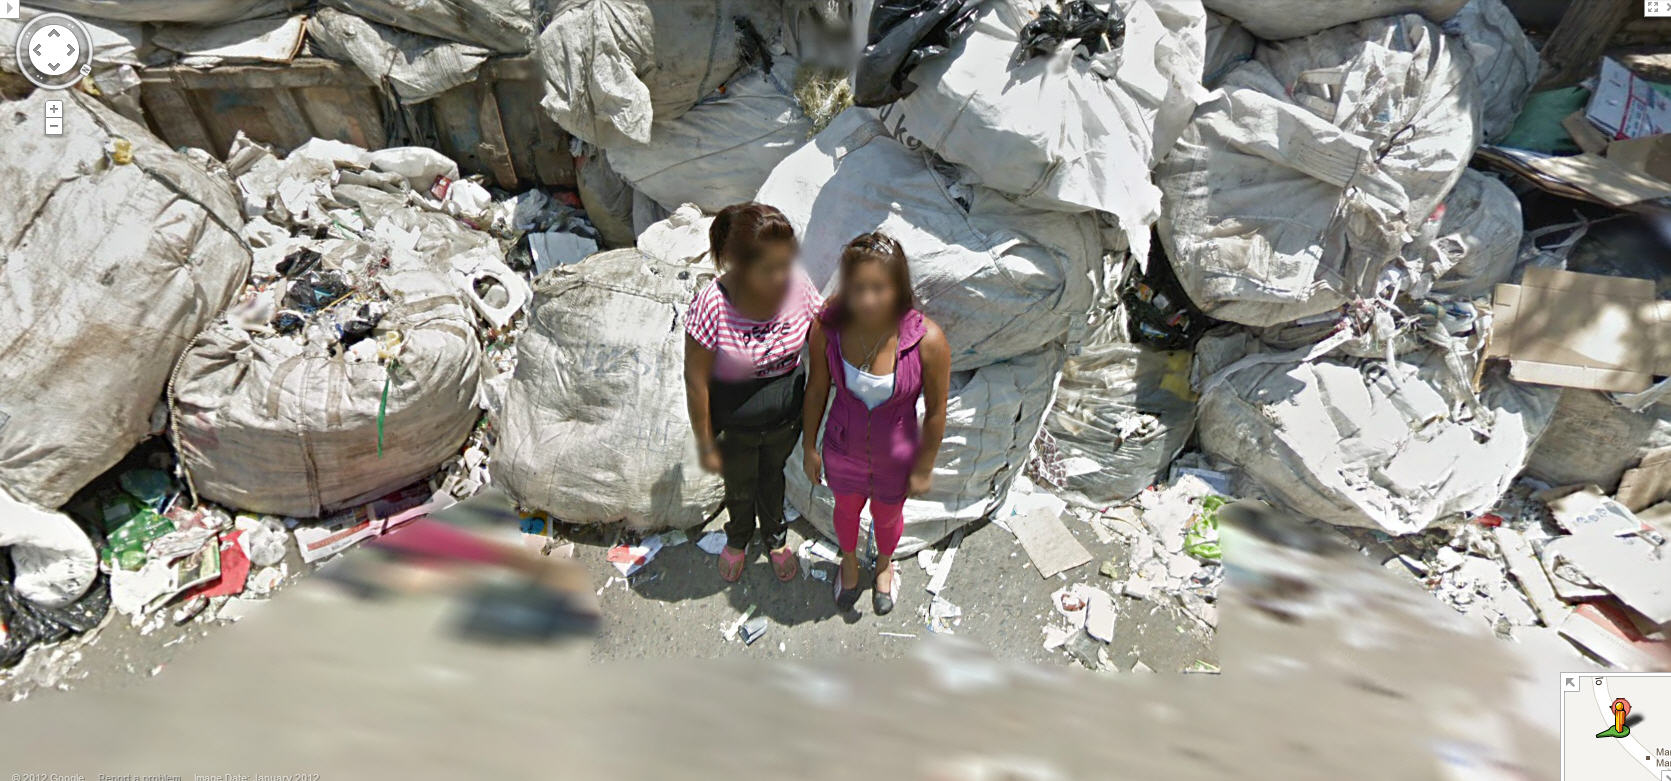 street-view-captures-a-contrast-in-chile-girls-and-garbage